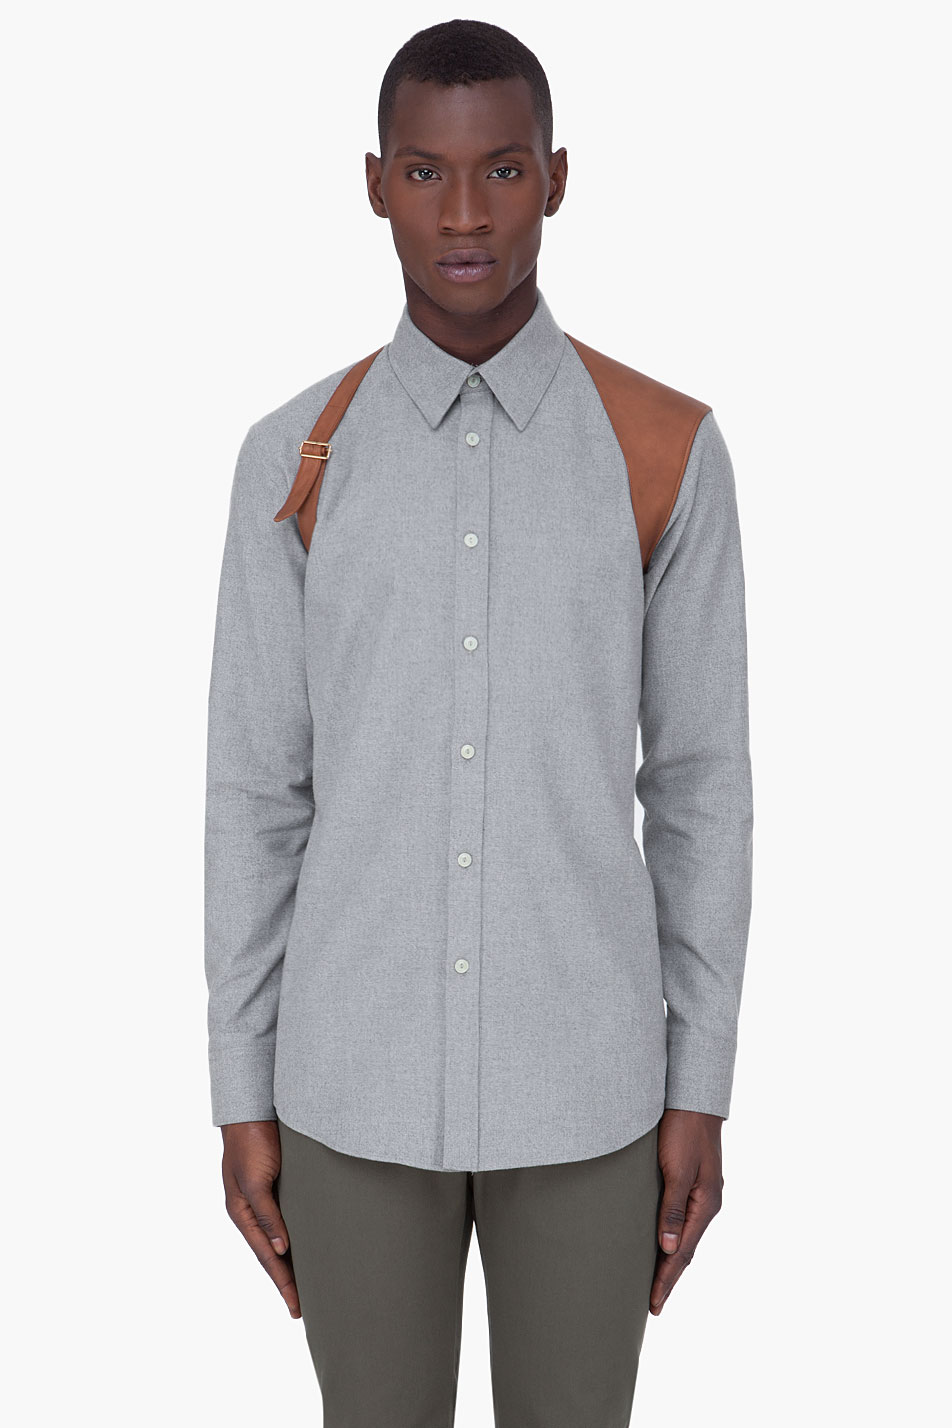 alexander mcqueen leather harness shirt in gray for men lyst